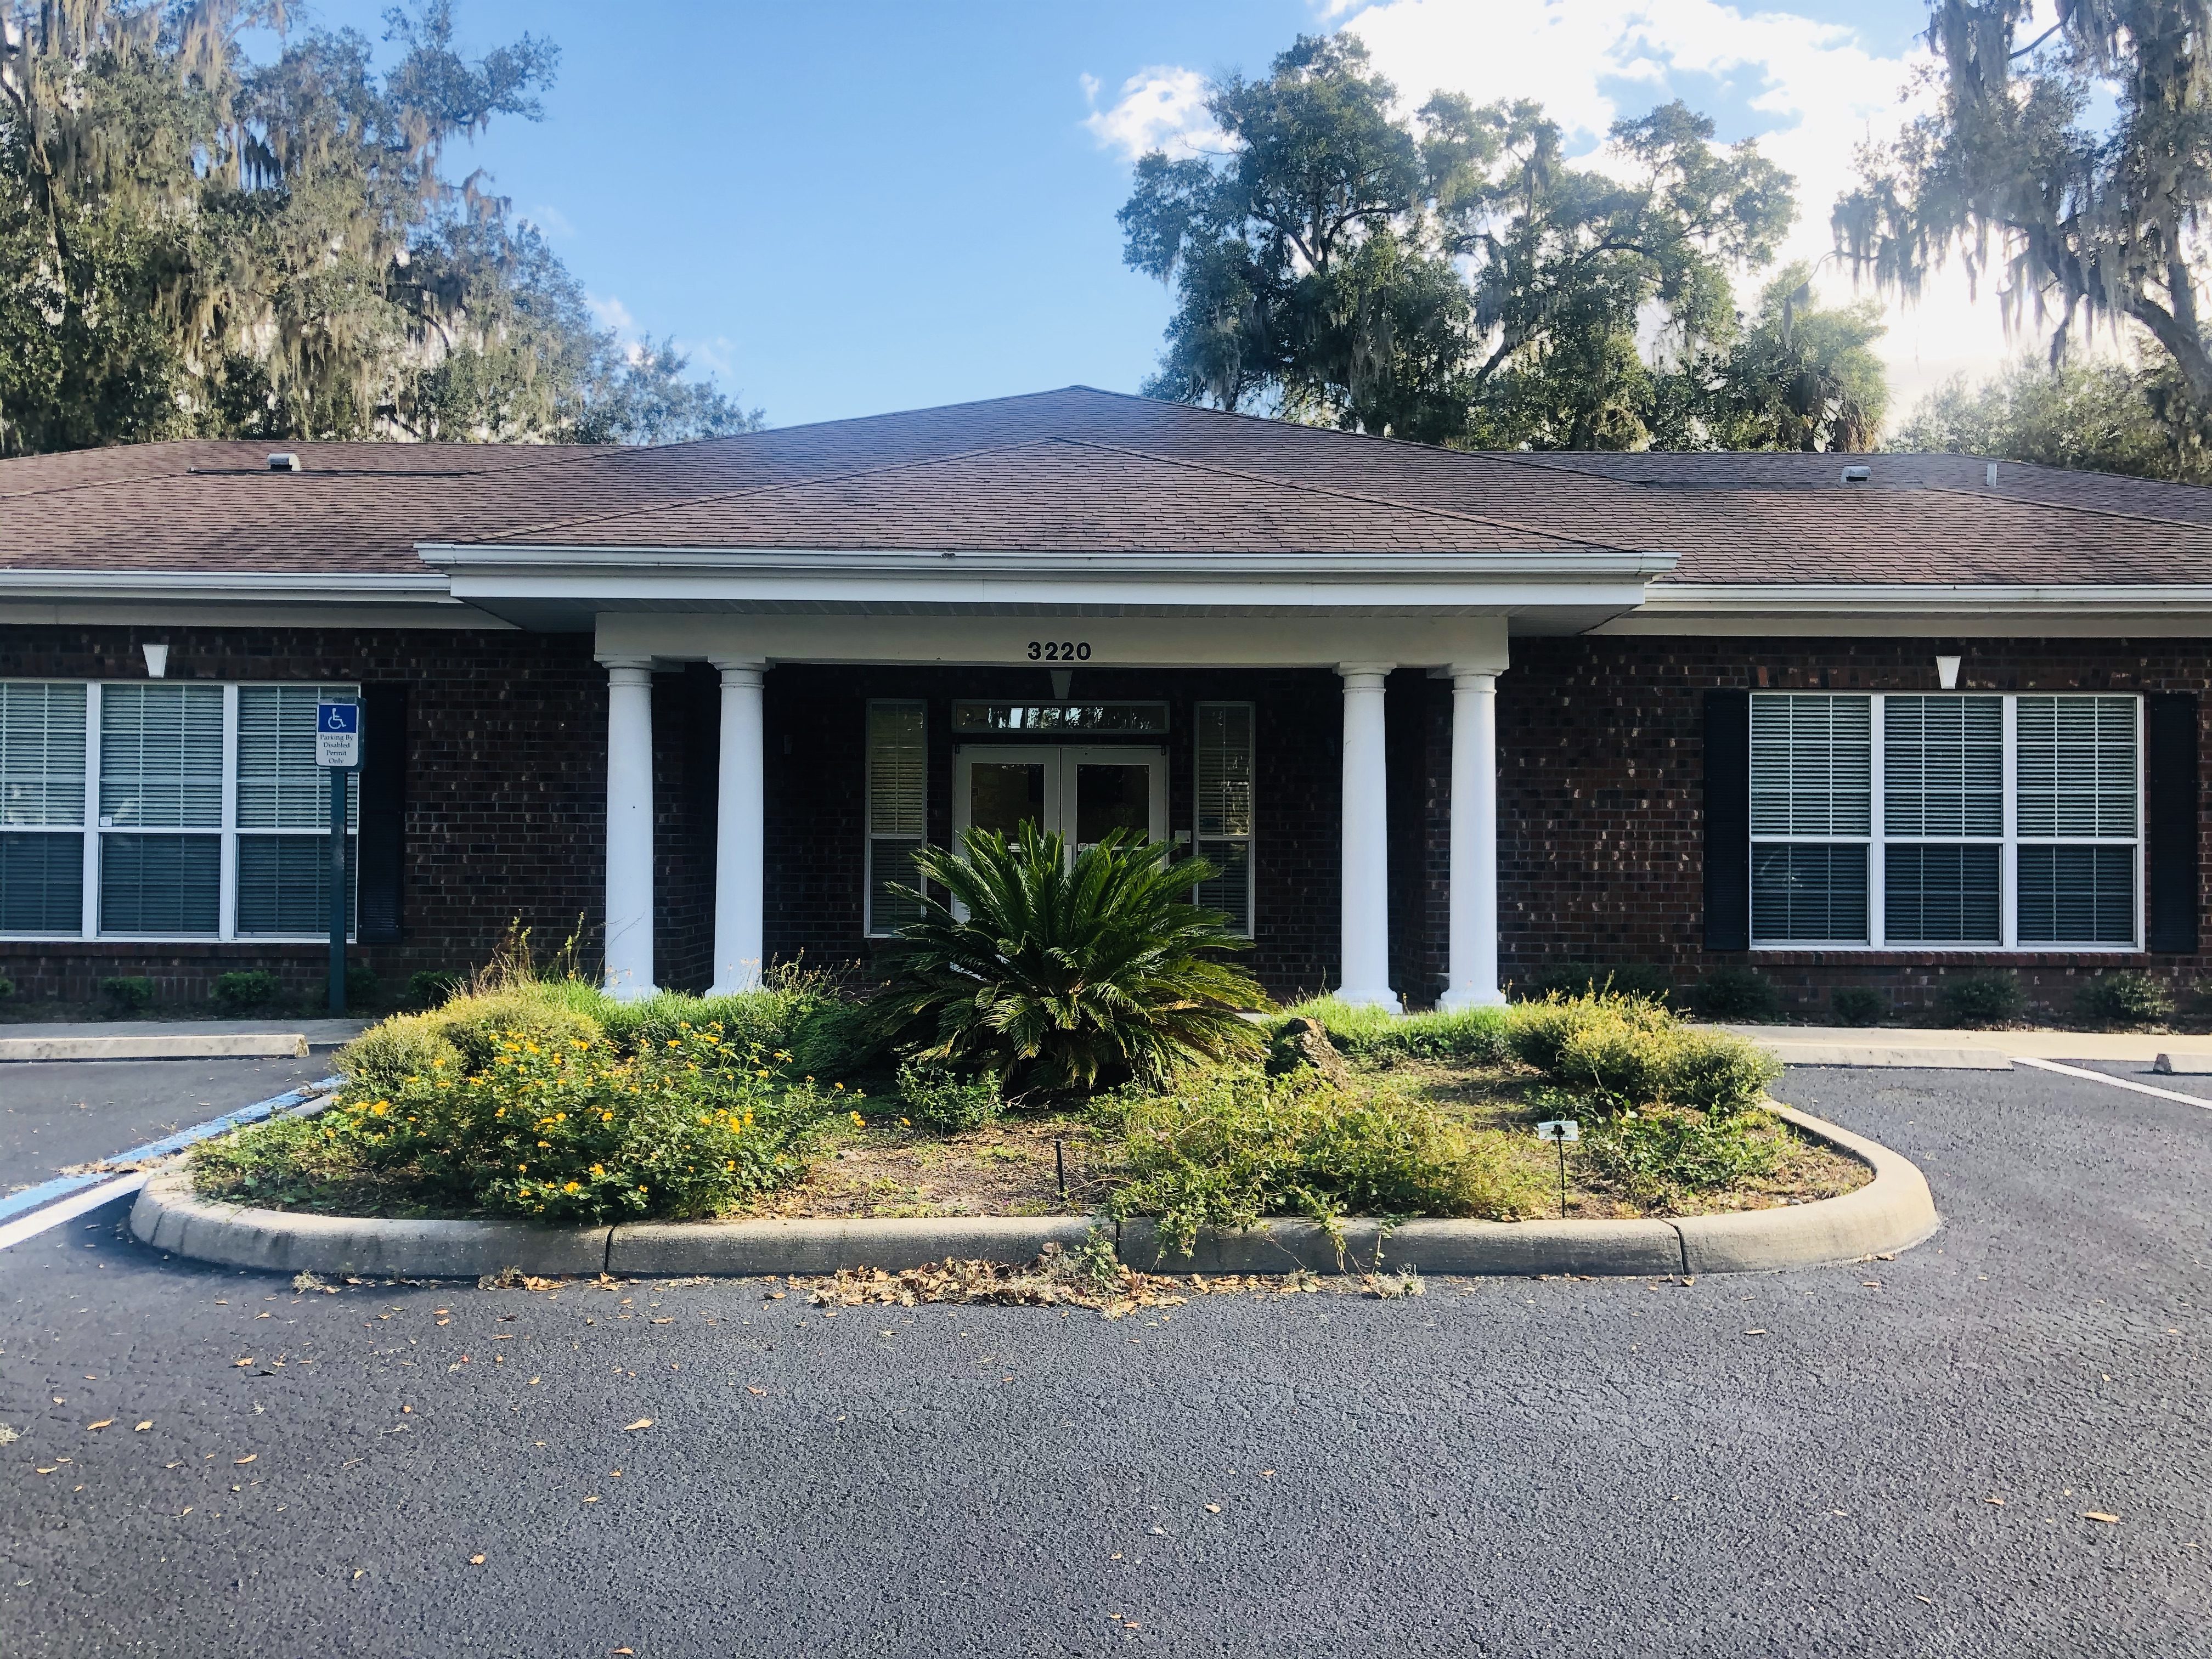 Ocala Building for Sale